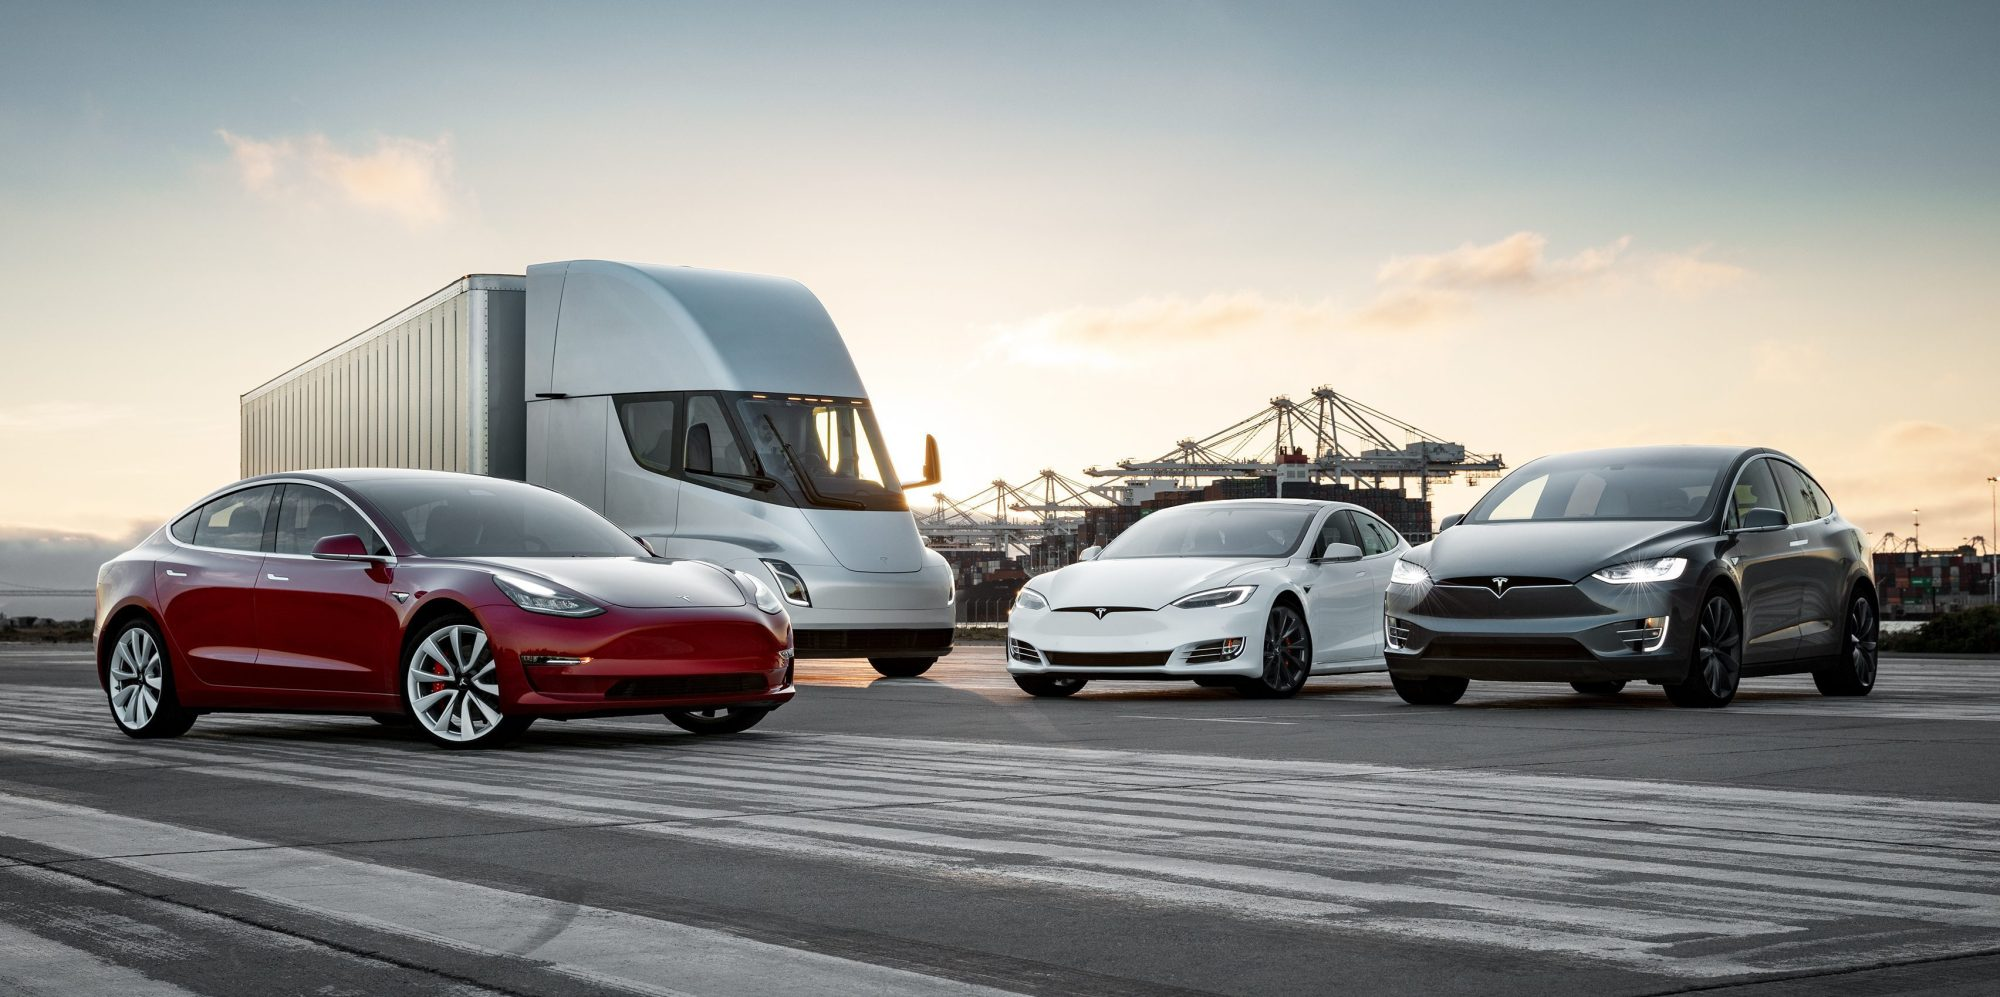 Tesla Q2 2020 Outstanding Safety Report Leading Into A New Industrial Standard